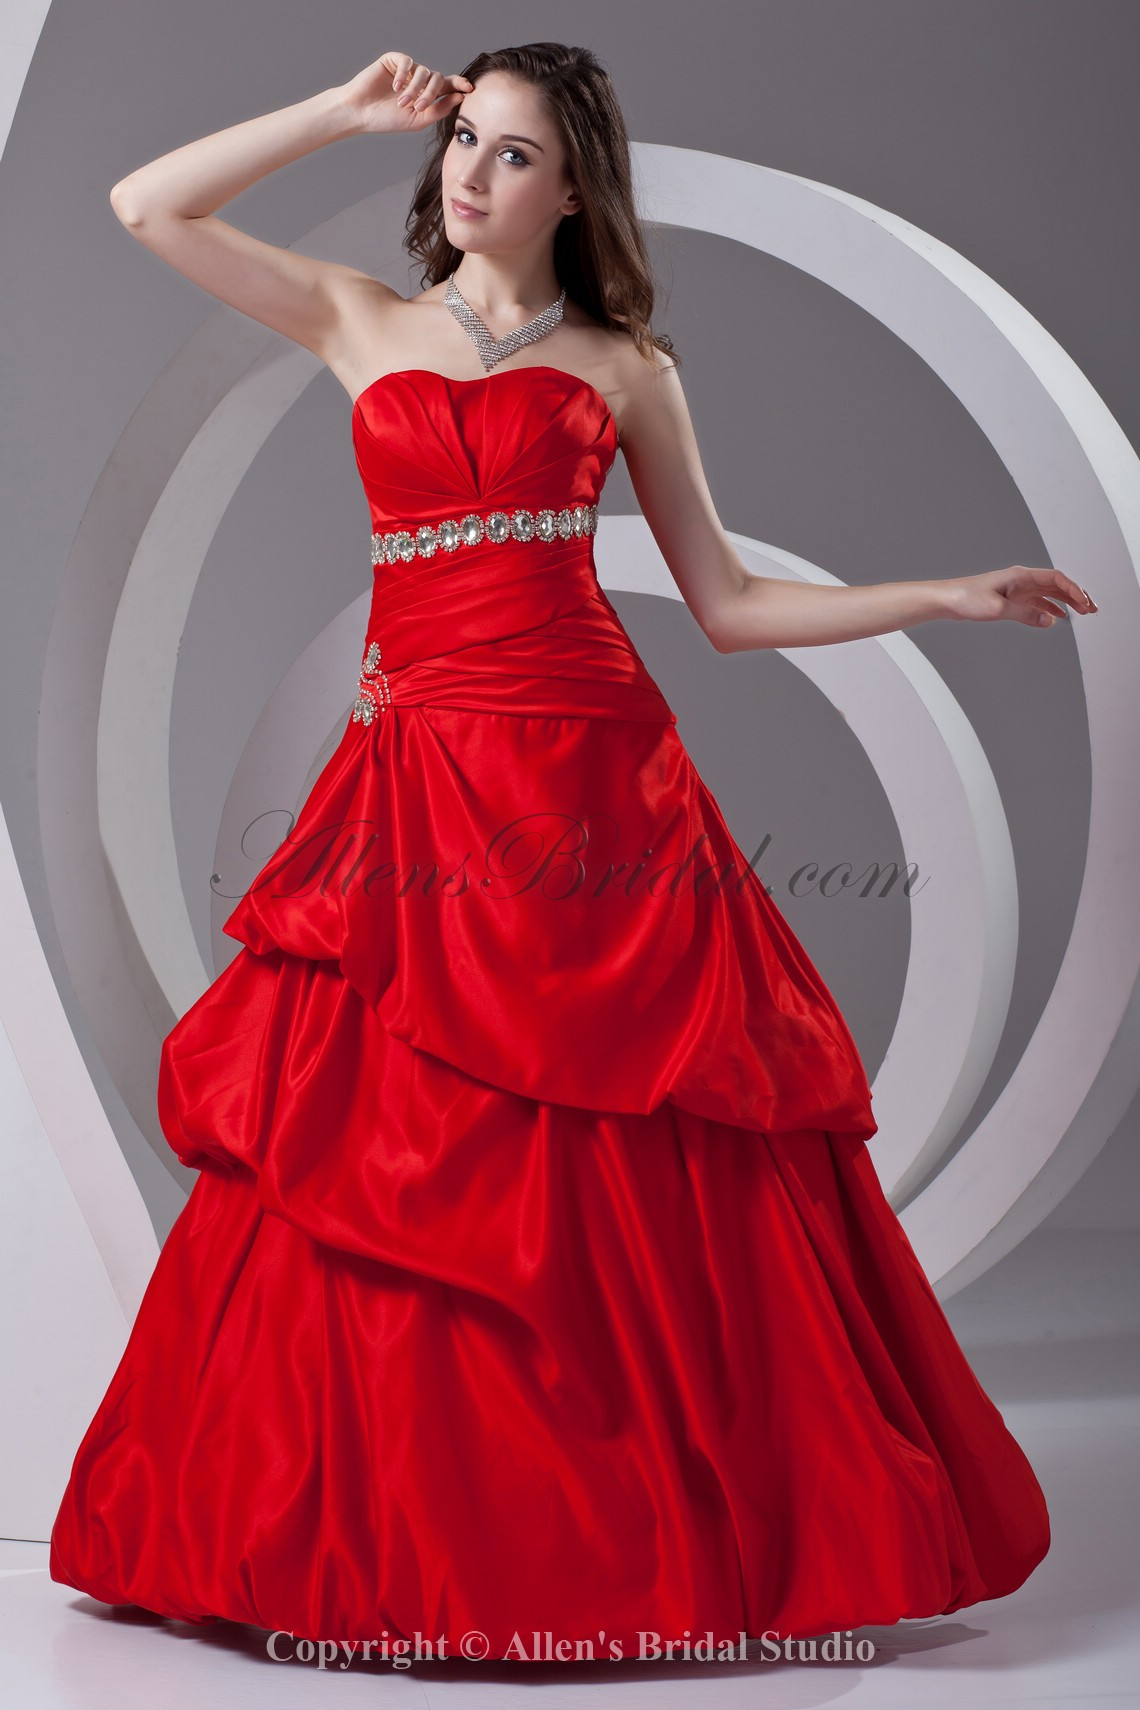 /361-2884/satin-sweetheart-neckline-ball-gown-floor-length-crystals-prom-dress.jpg